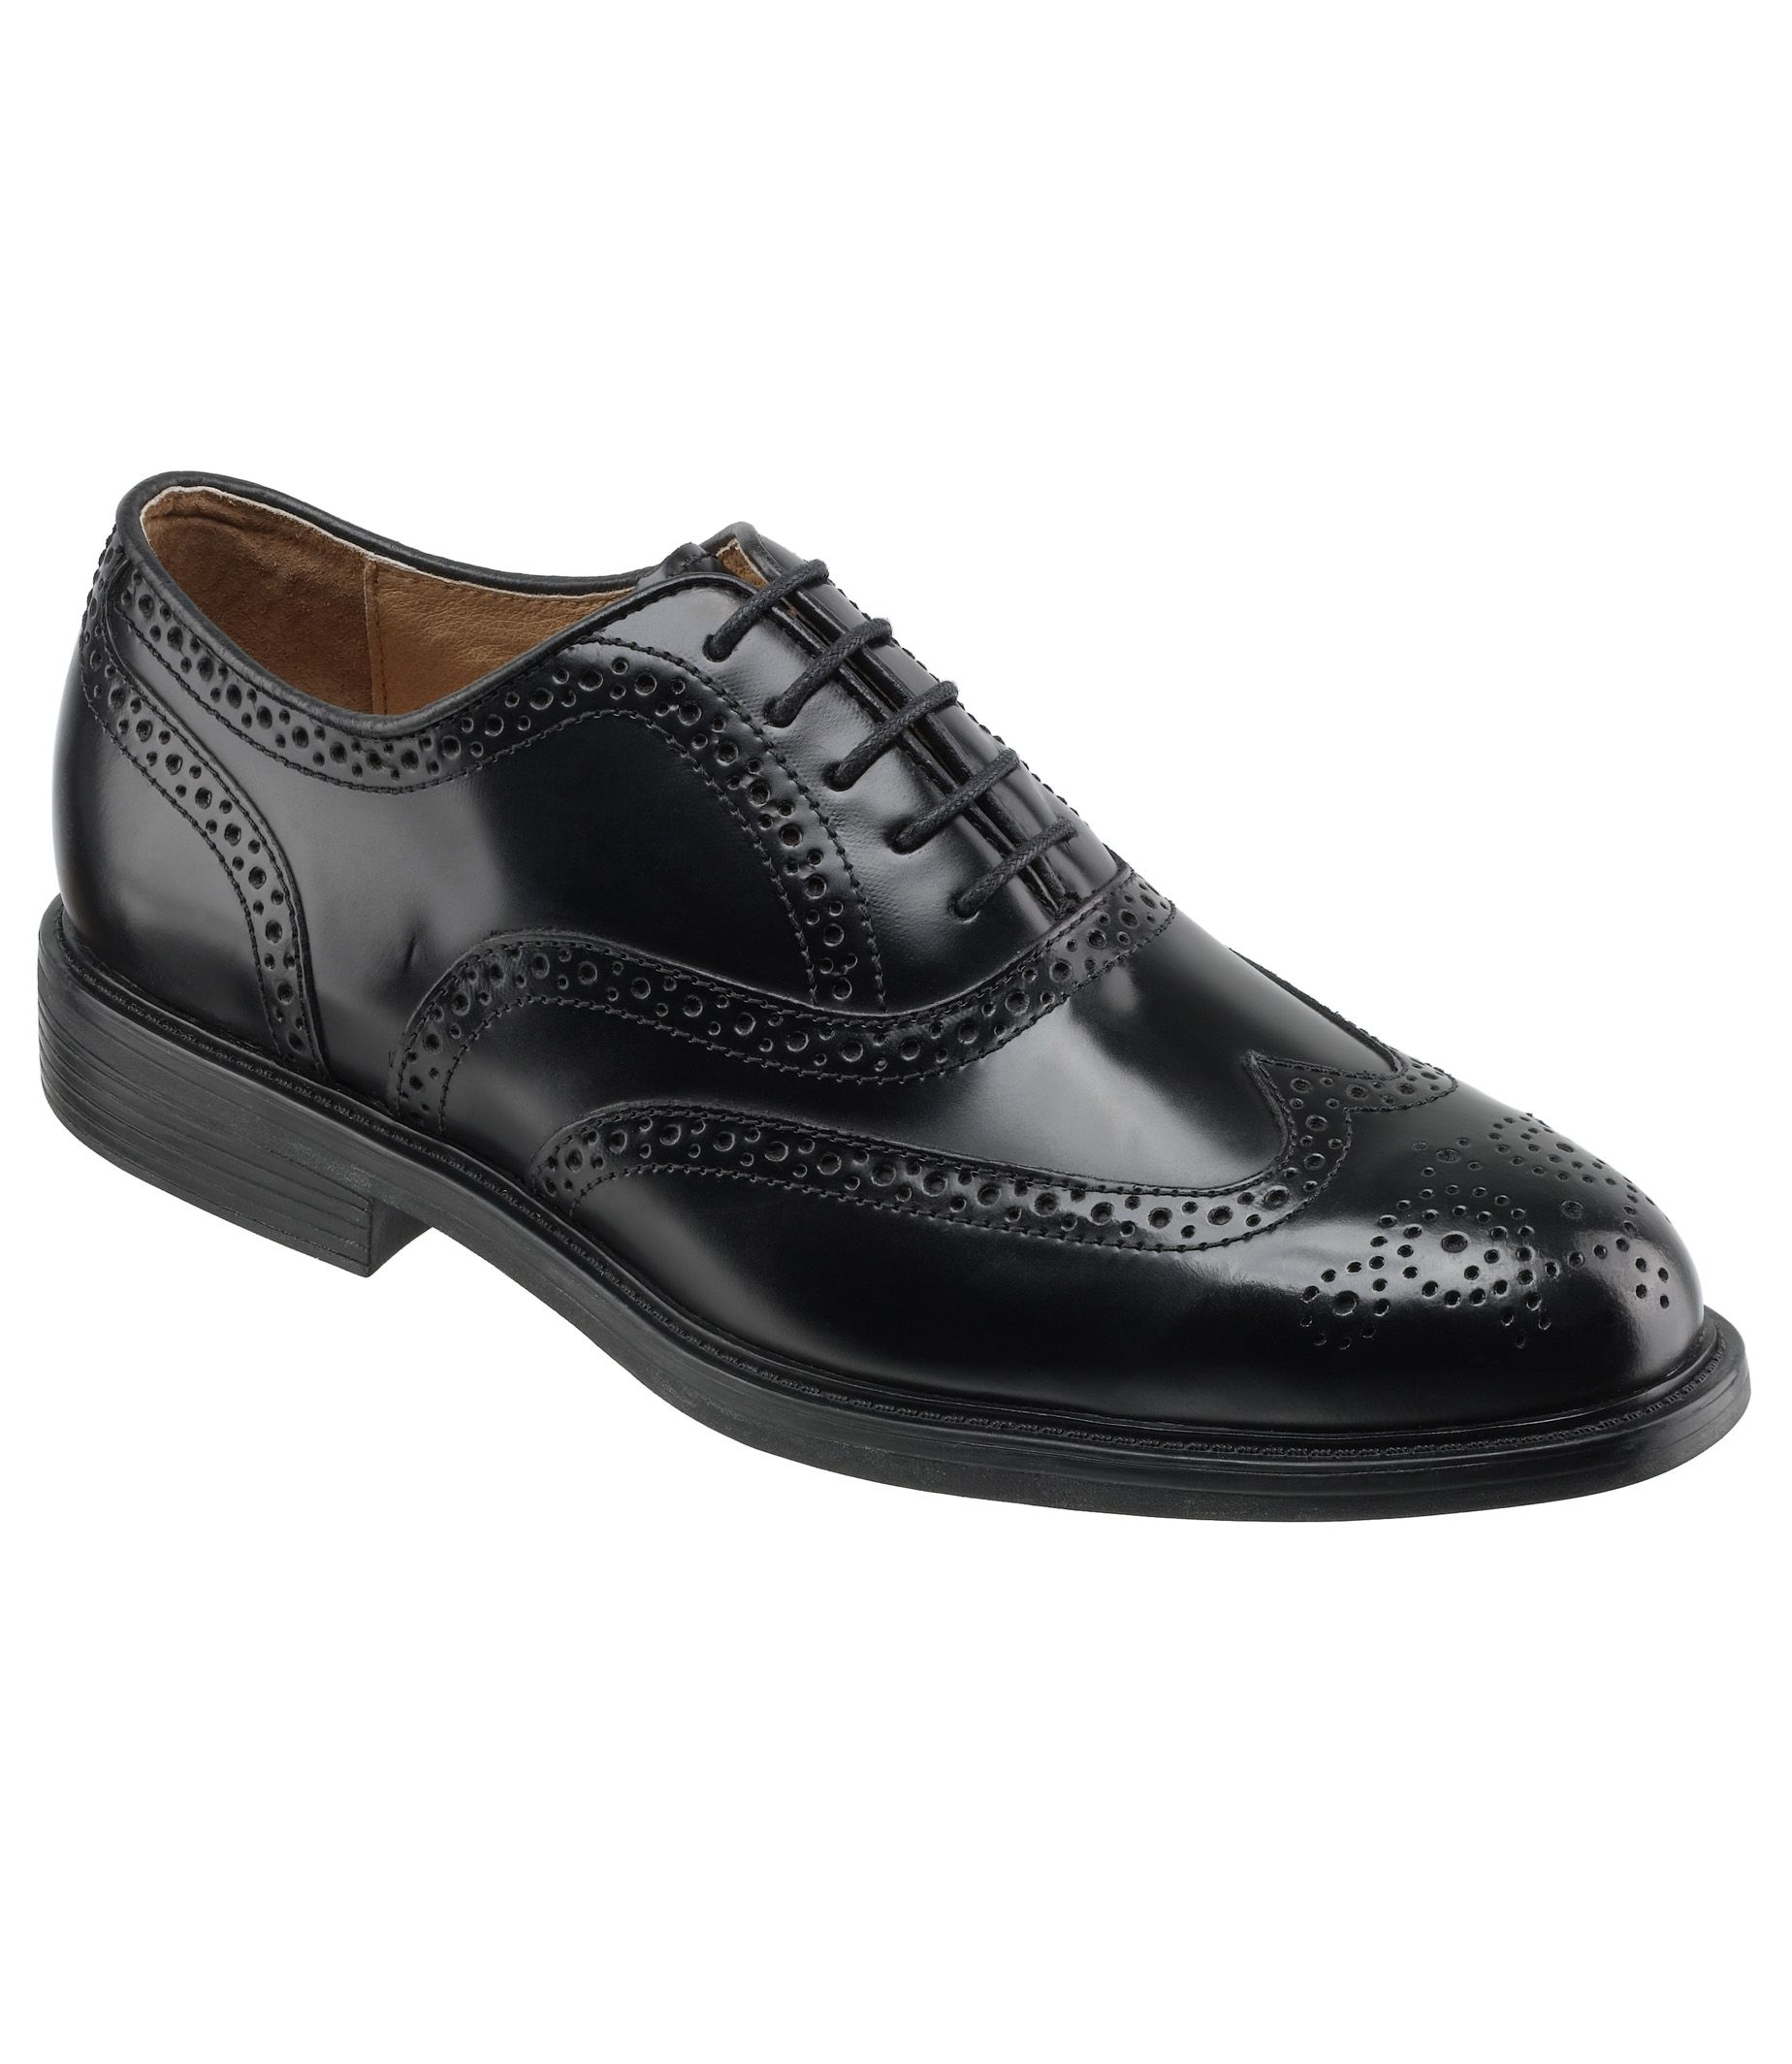 Forties Dress Shoes